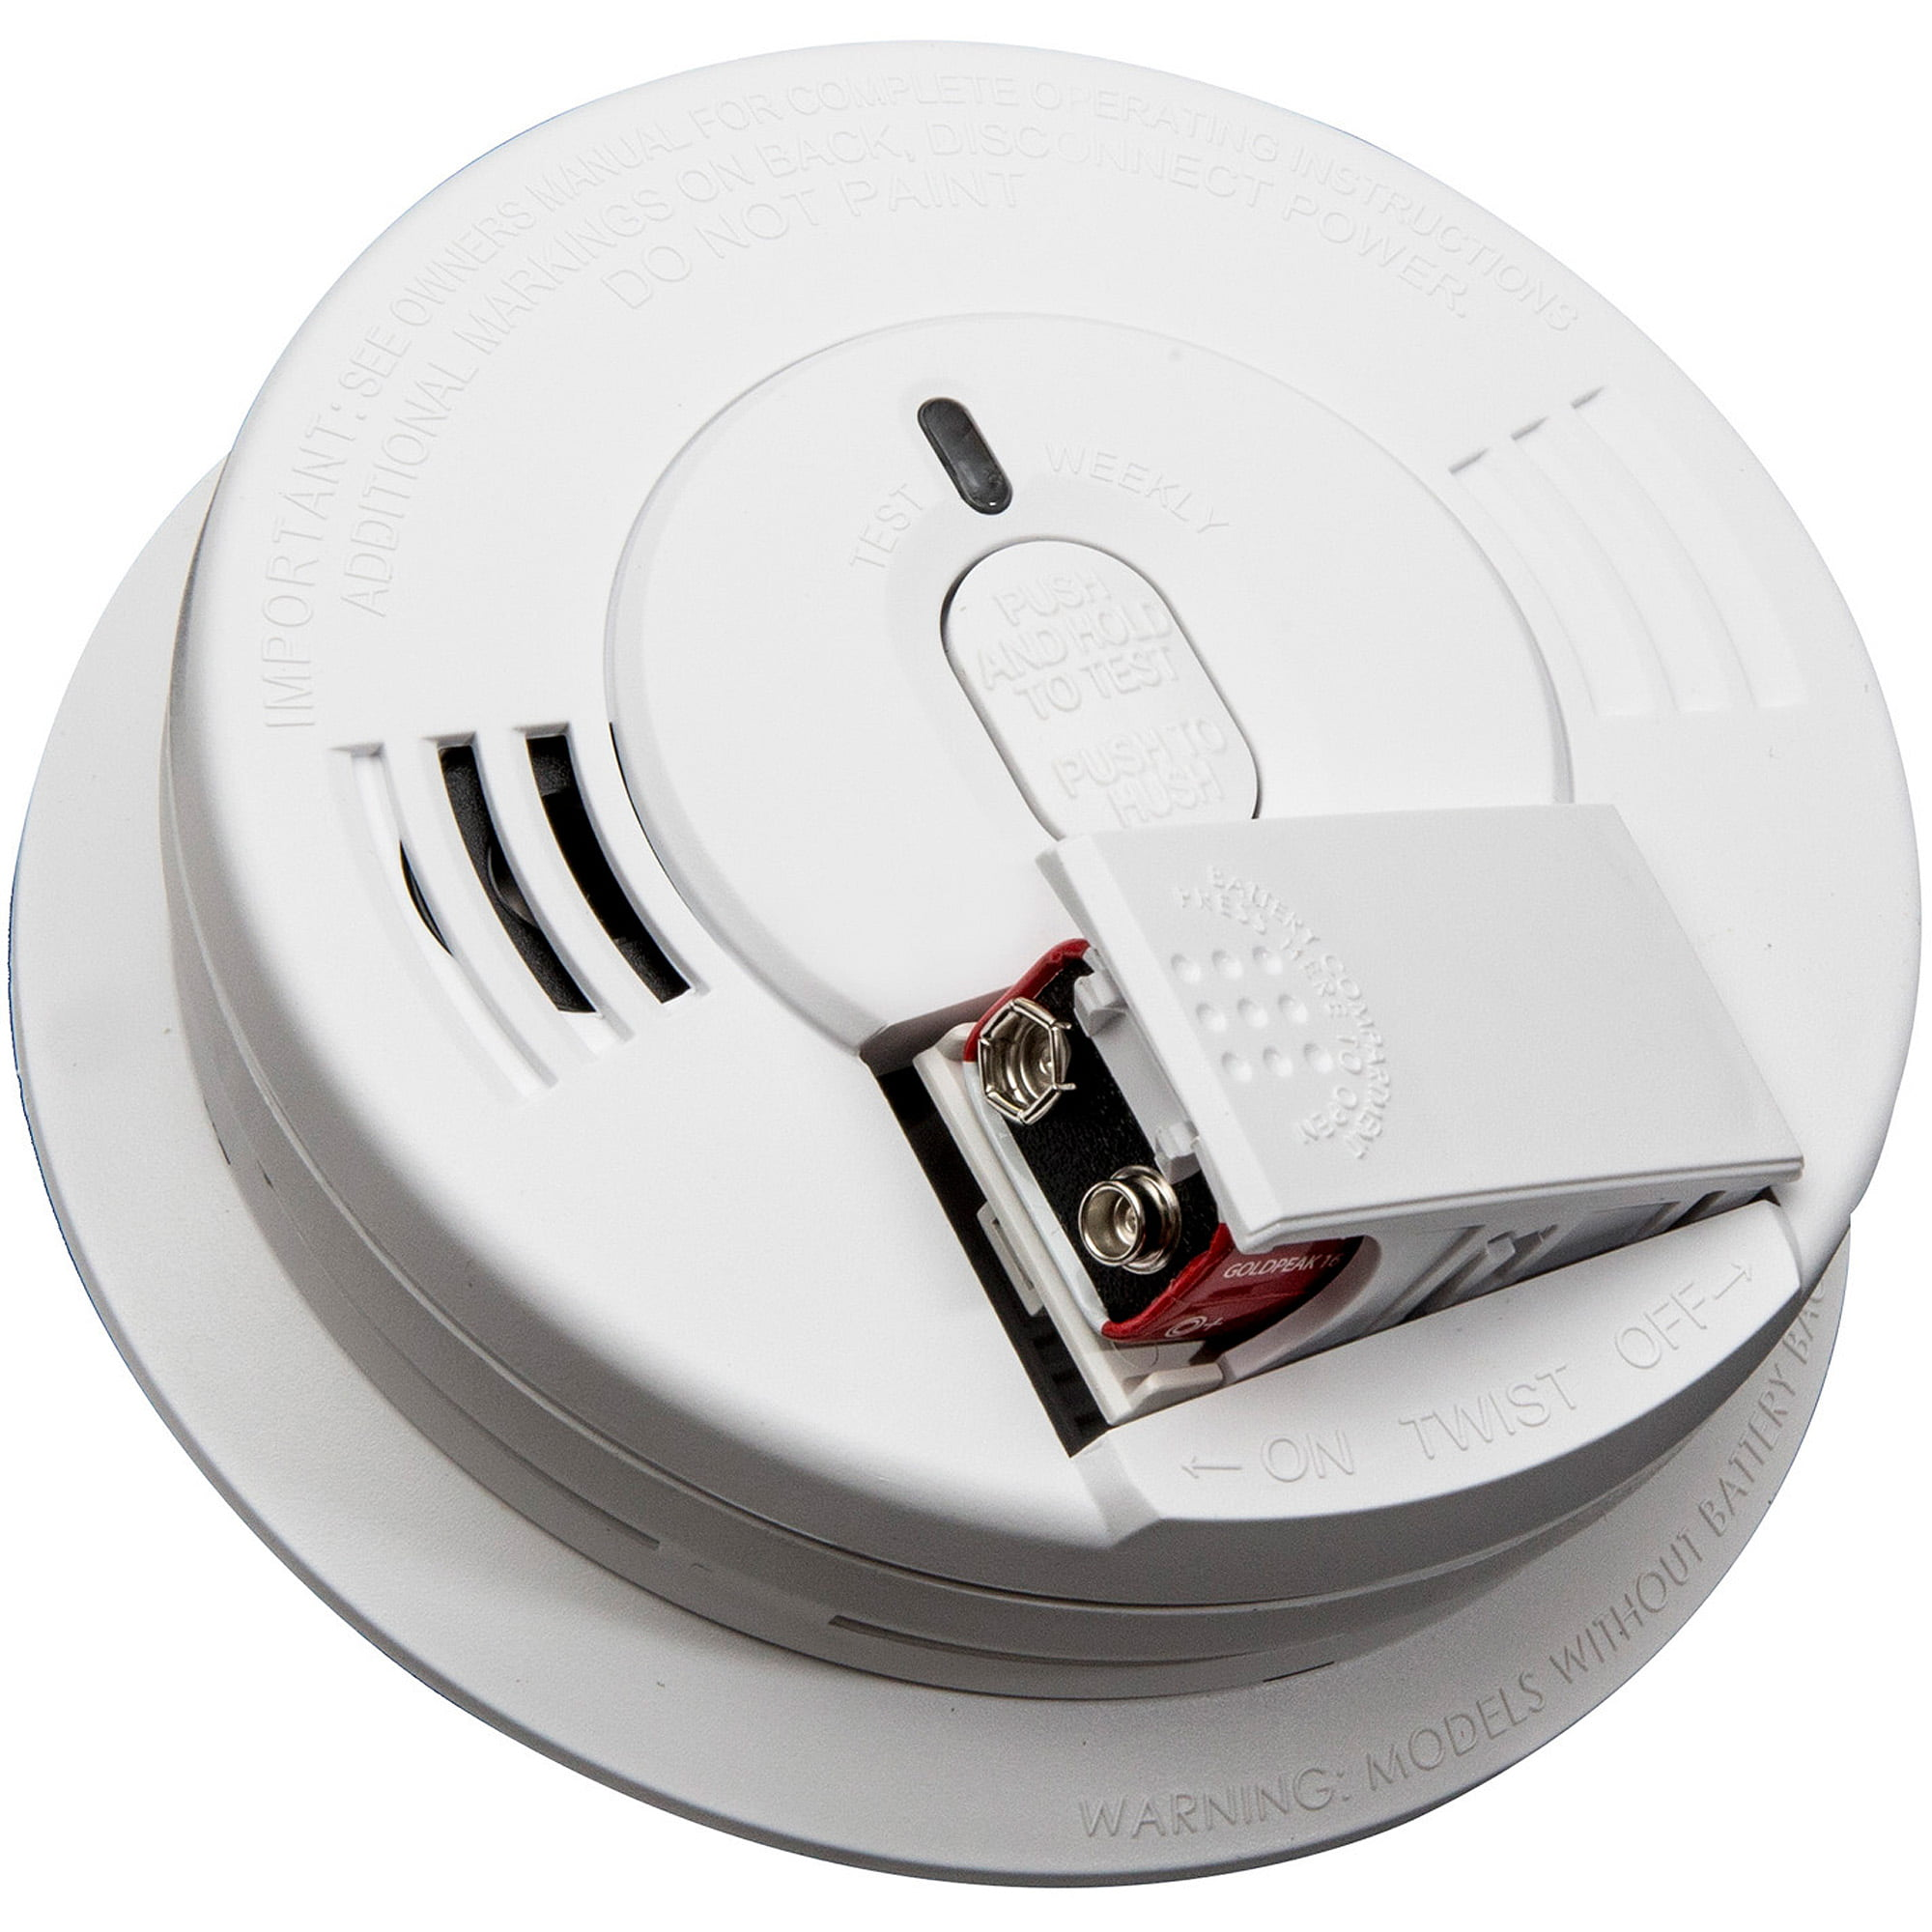 kidde smoke alarm owners manual